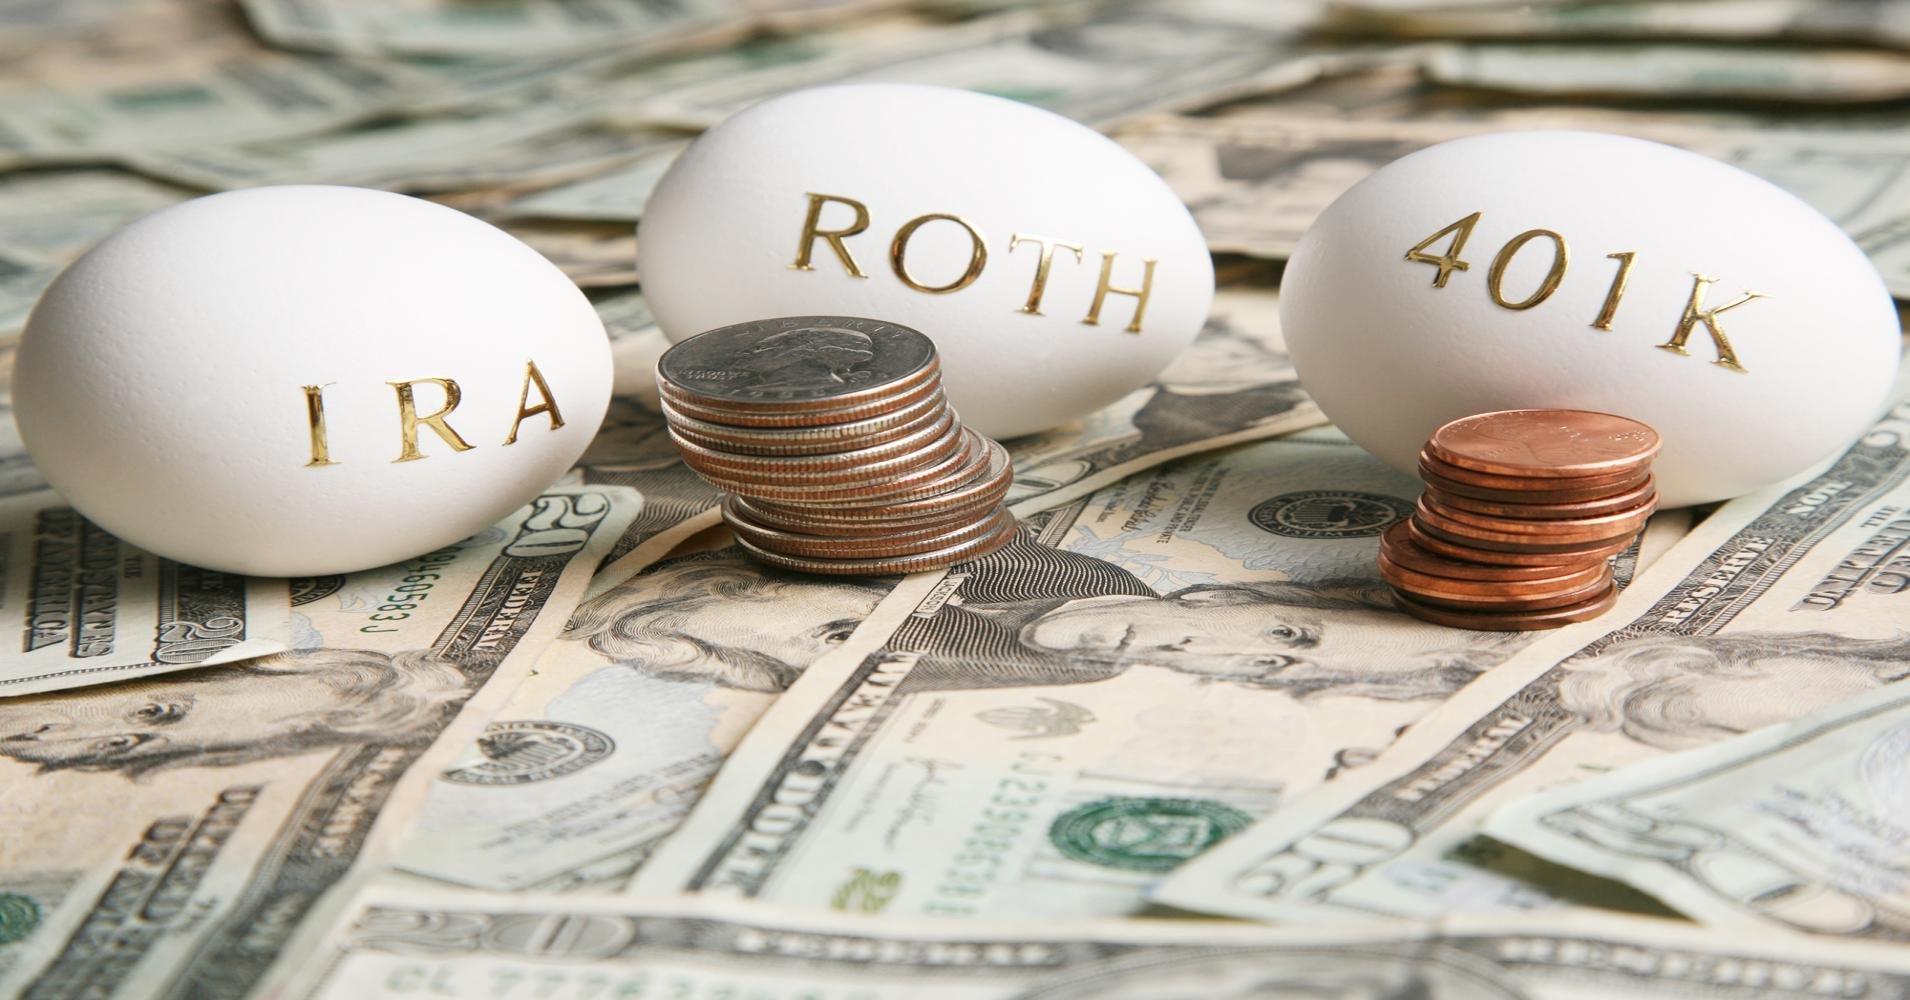 Here's how to avoid taxes on Roth IRA conversions